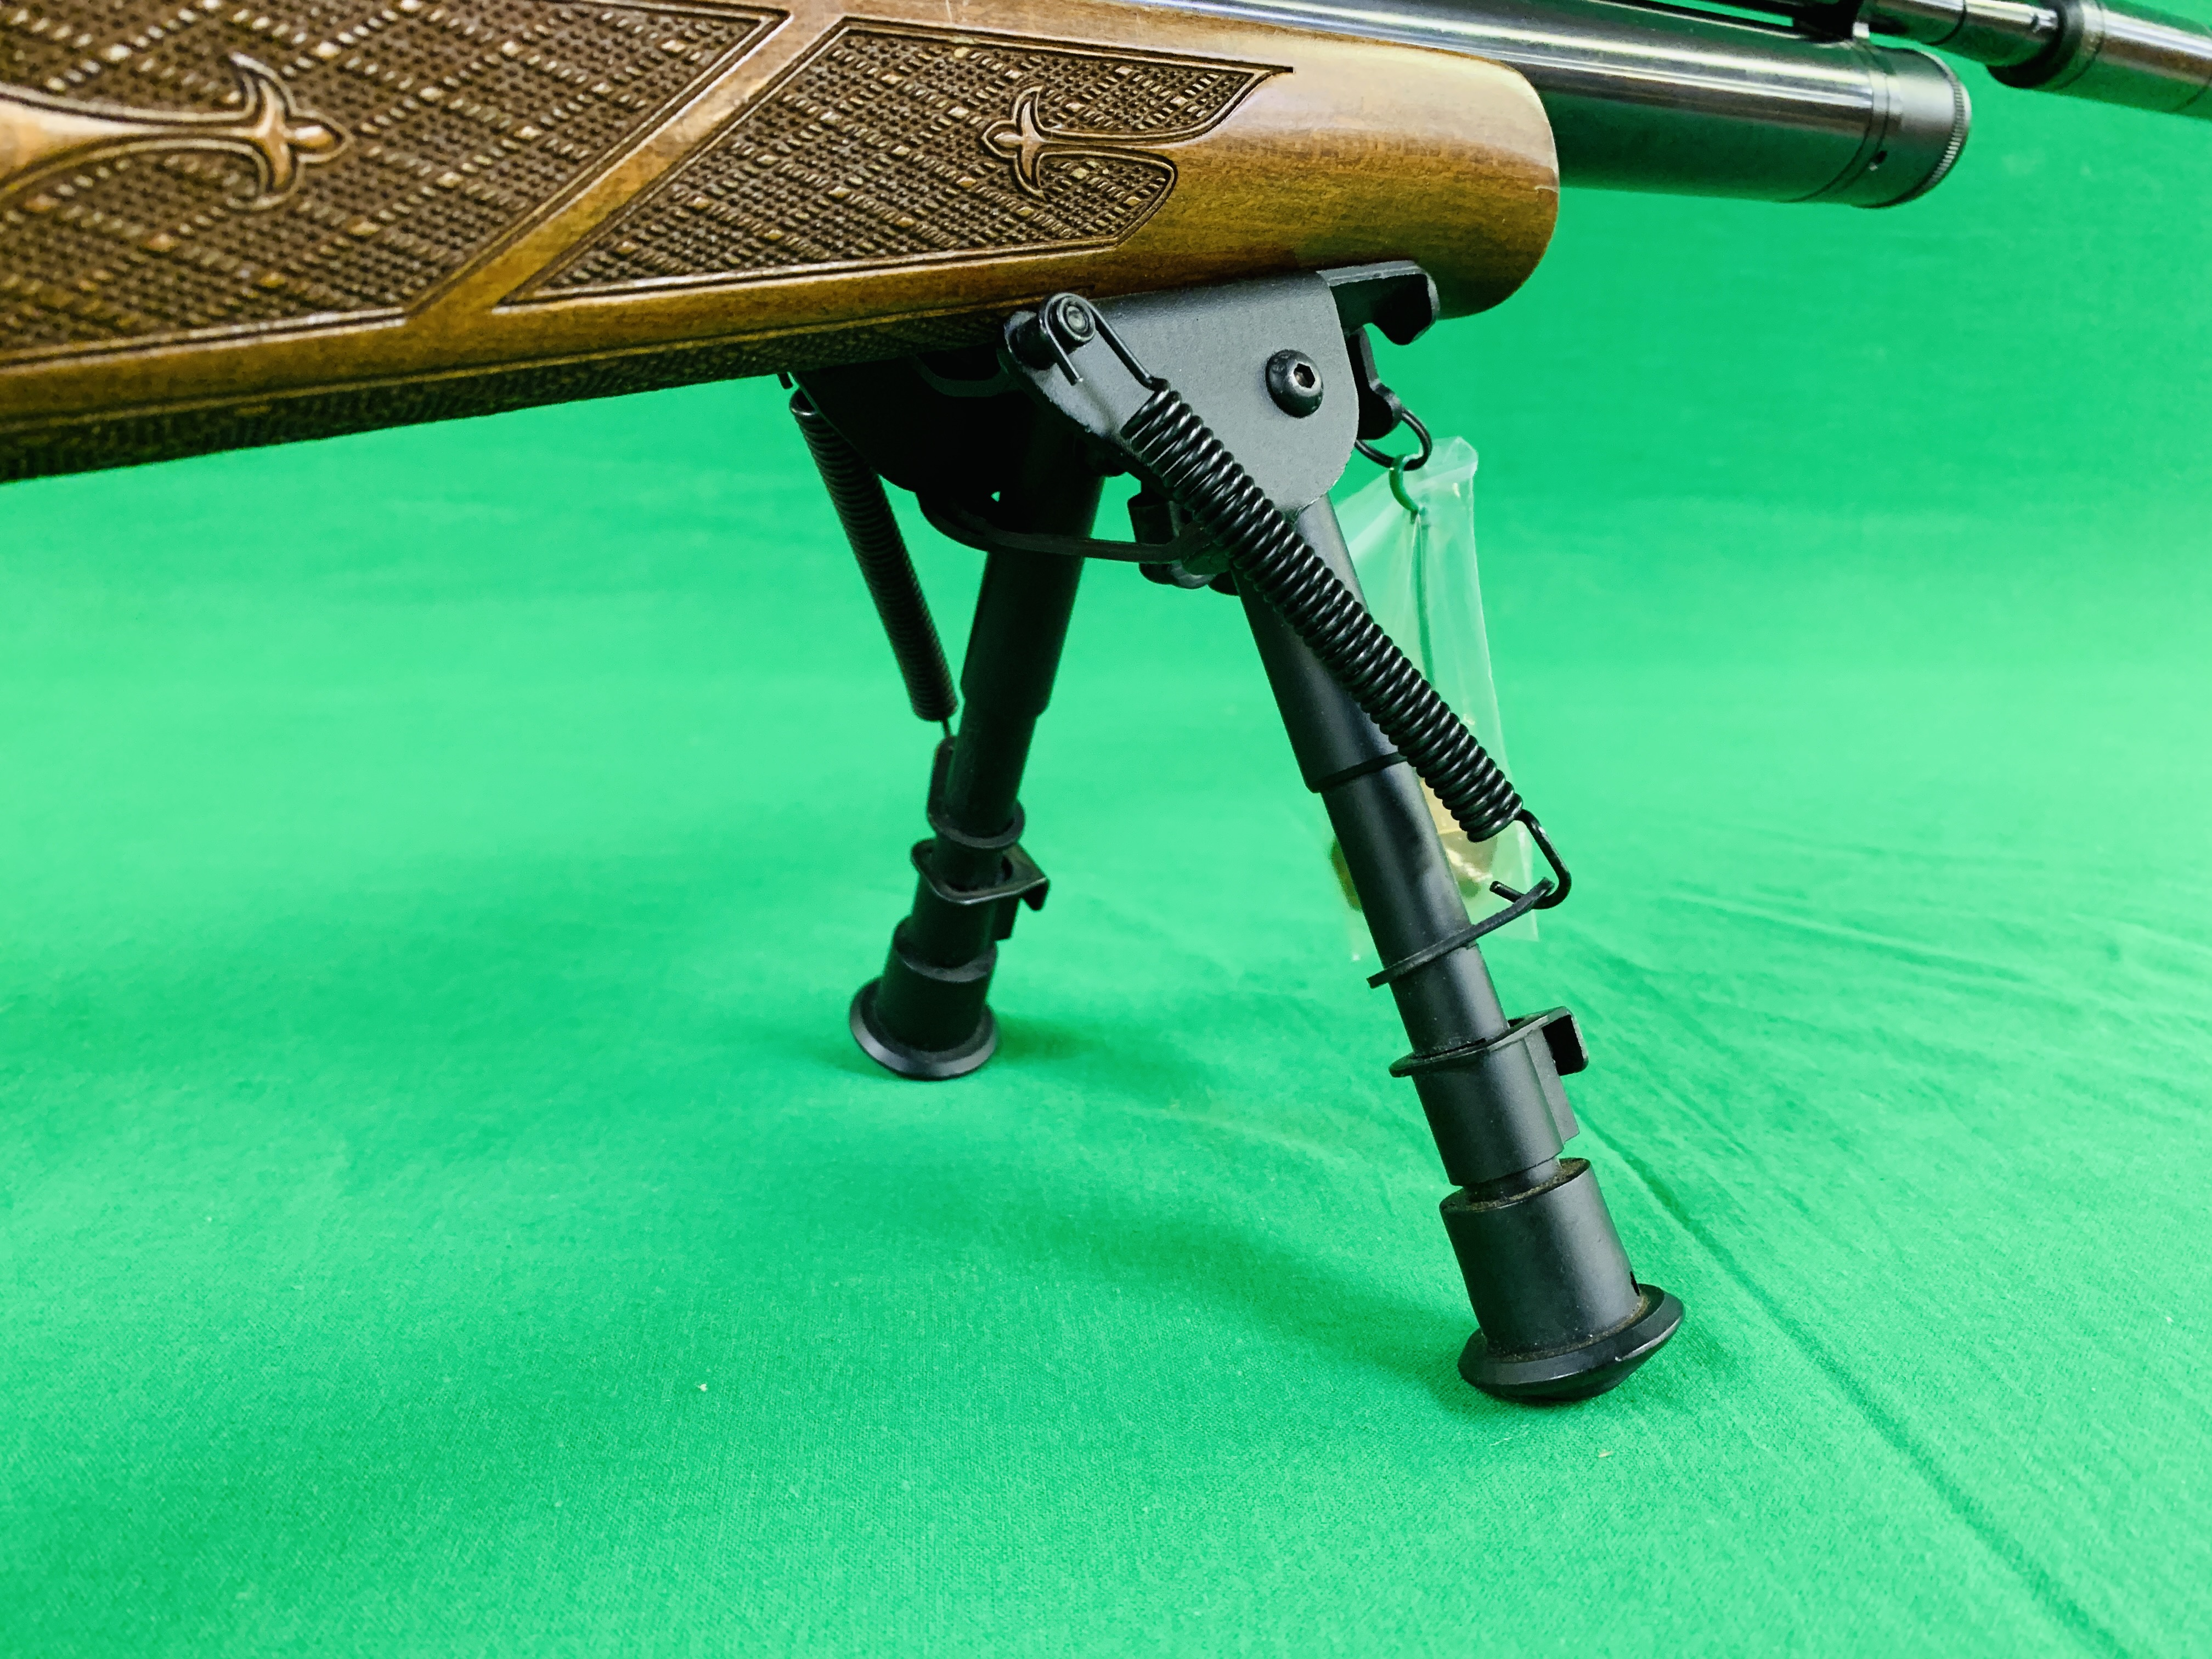 AIR ARMS S400 CLASSIC .177 BOLT ACTION PCP AIR RIFLE FITTED WITH BONUS 6. - Image 13 of 17